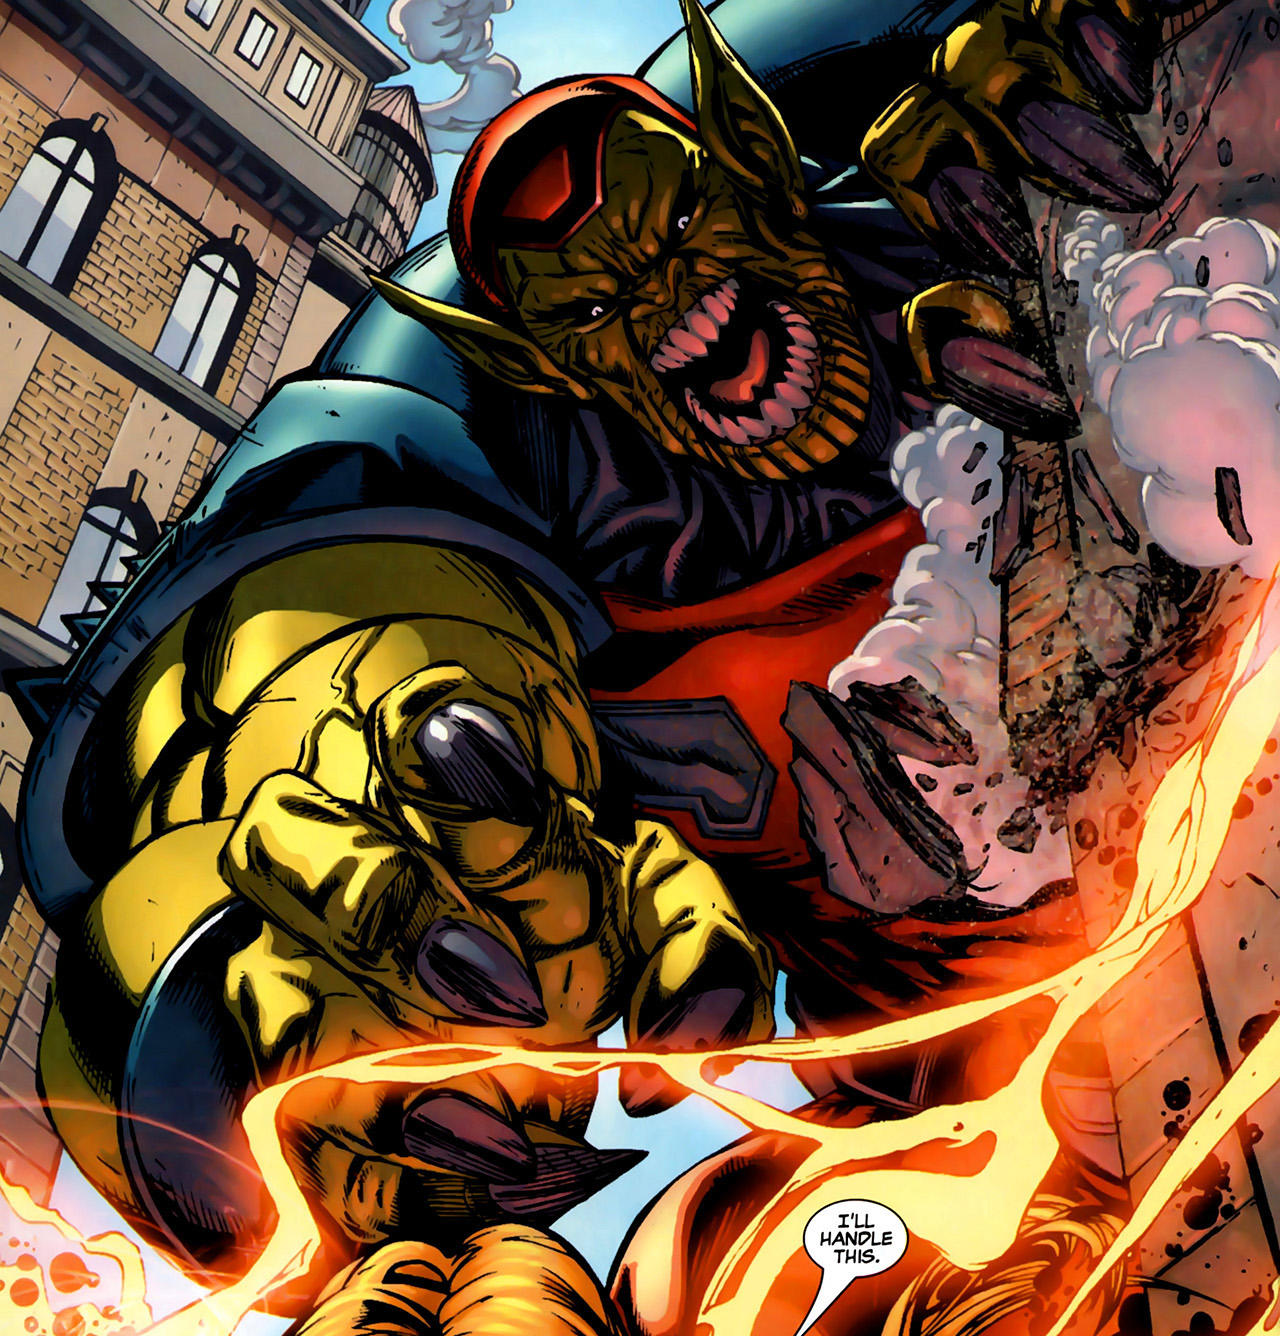 Henry Pym (Giant-Man Skrull) (Earth-616)